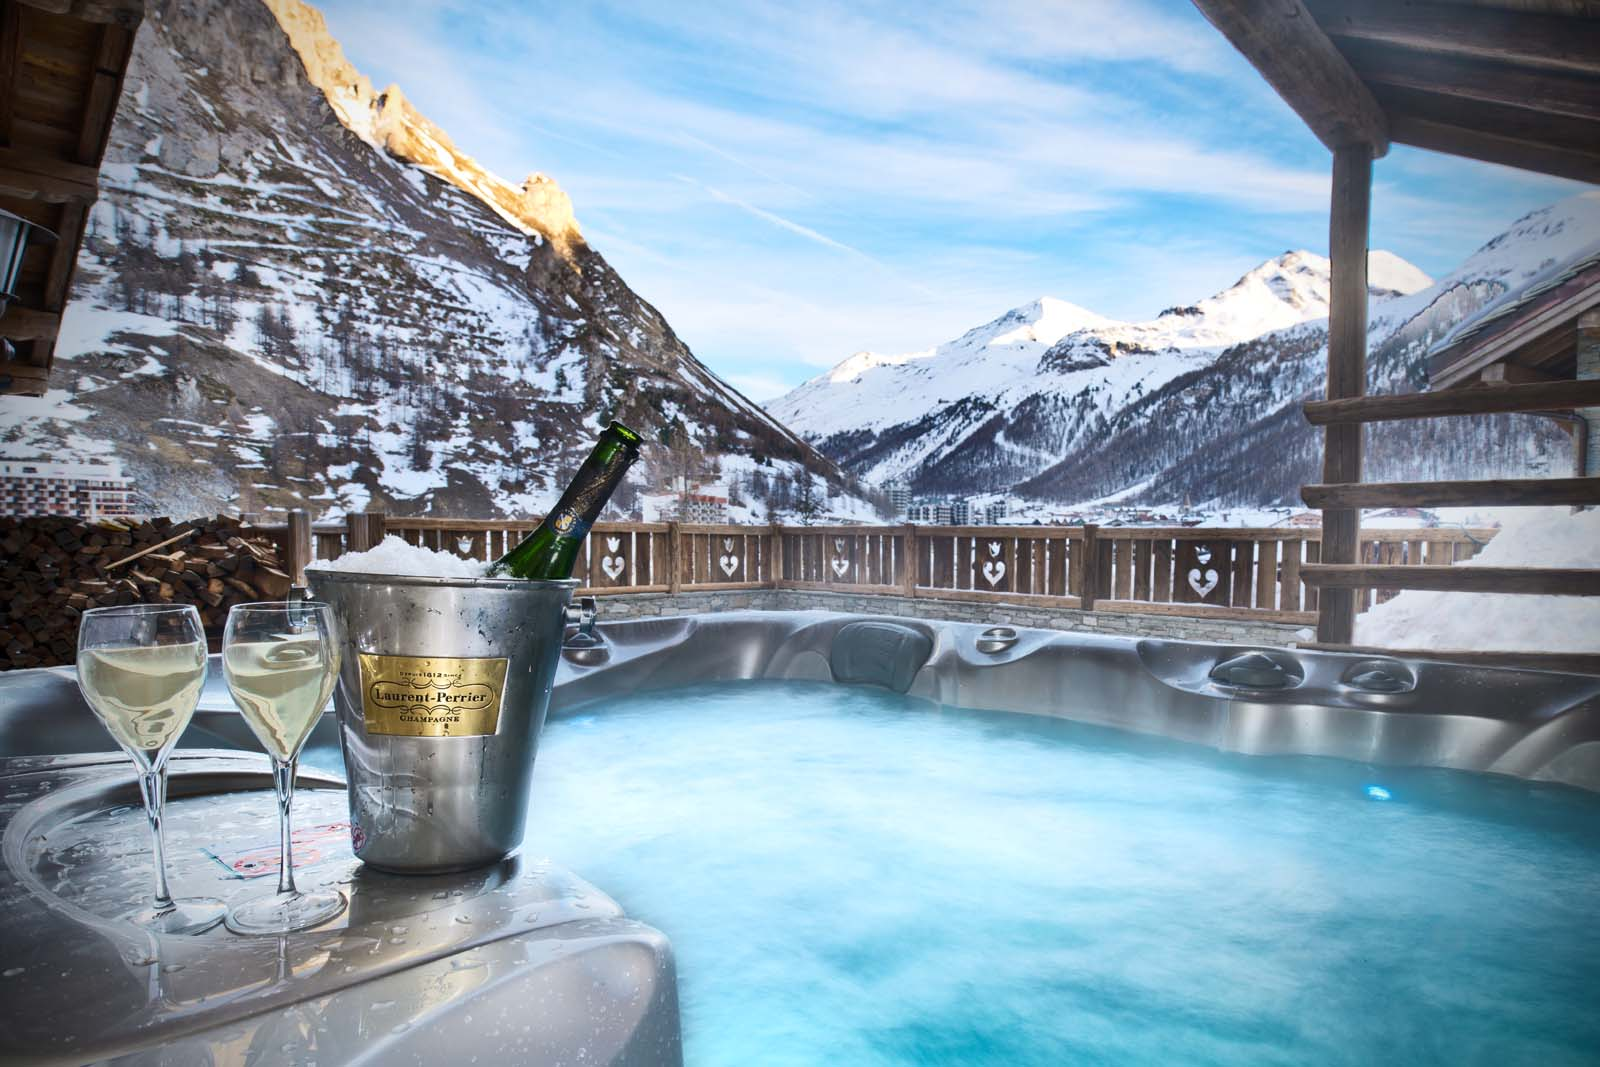 Chalet amourette in val d 39 isere by skiboutique for Boutique hotel ski